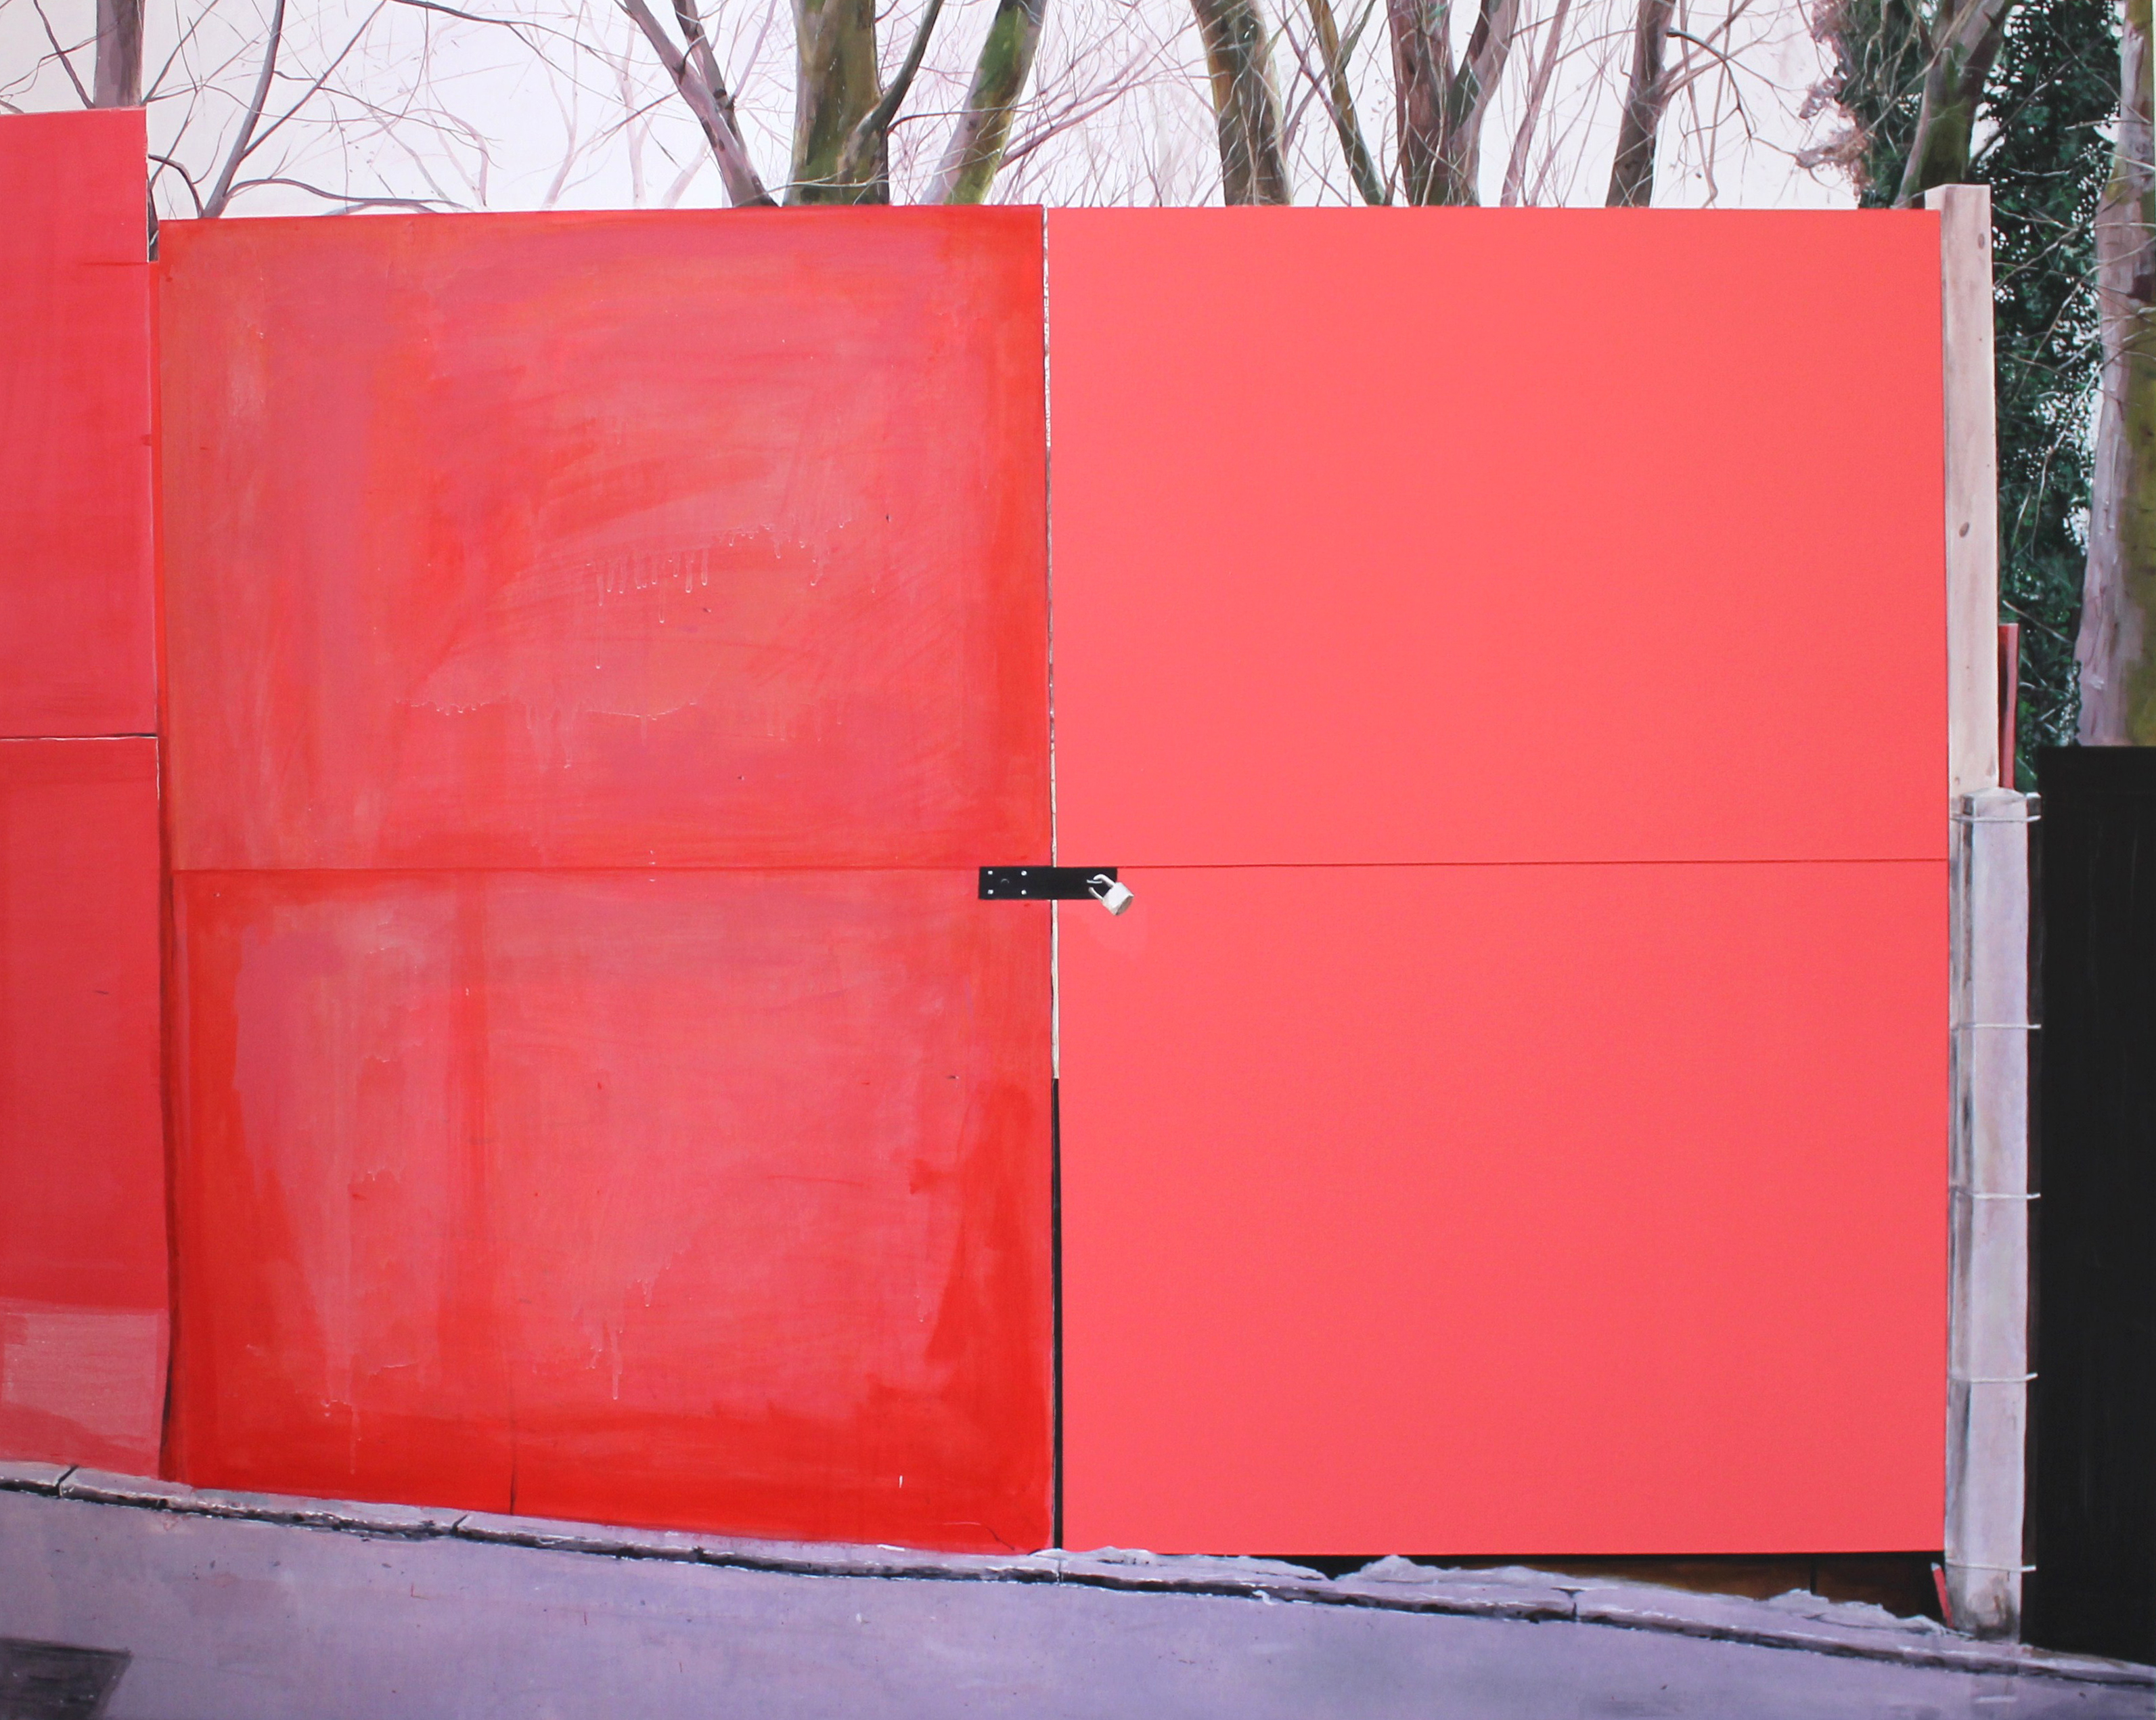 Untitled Red Gate Painting